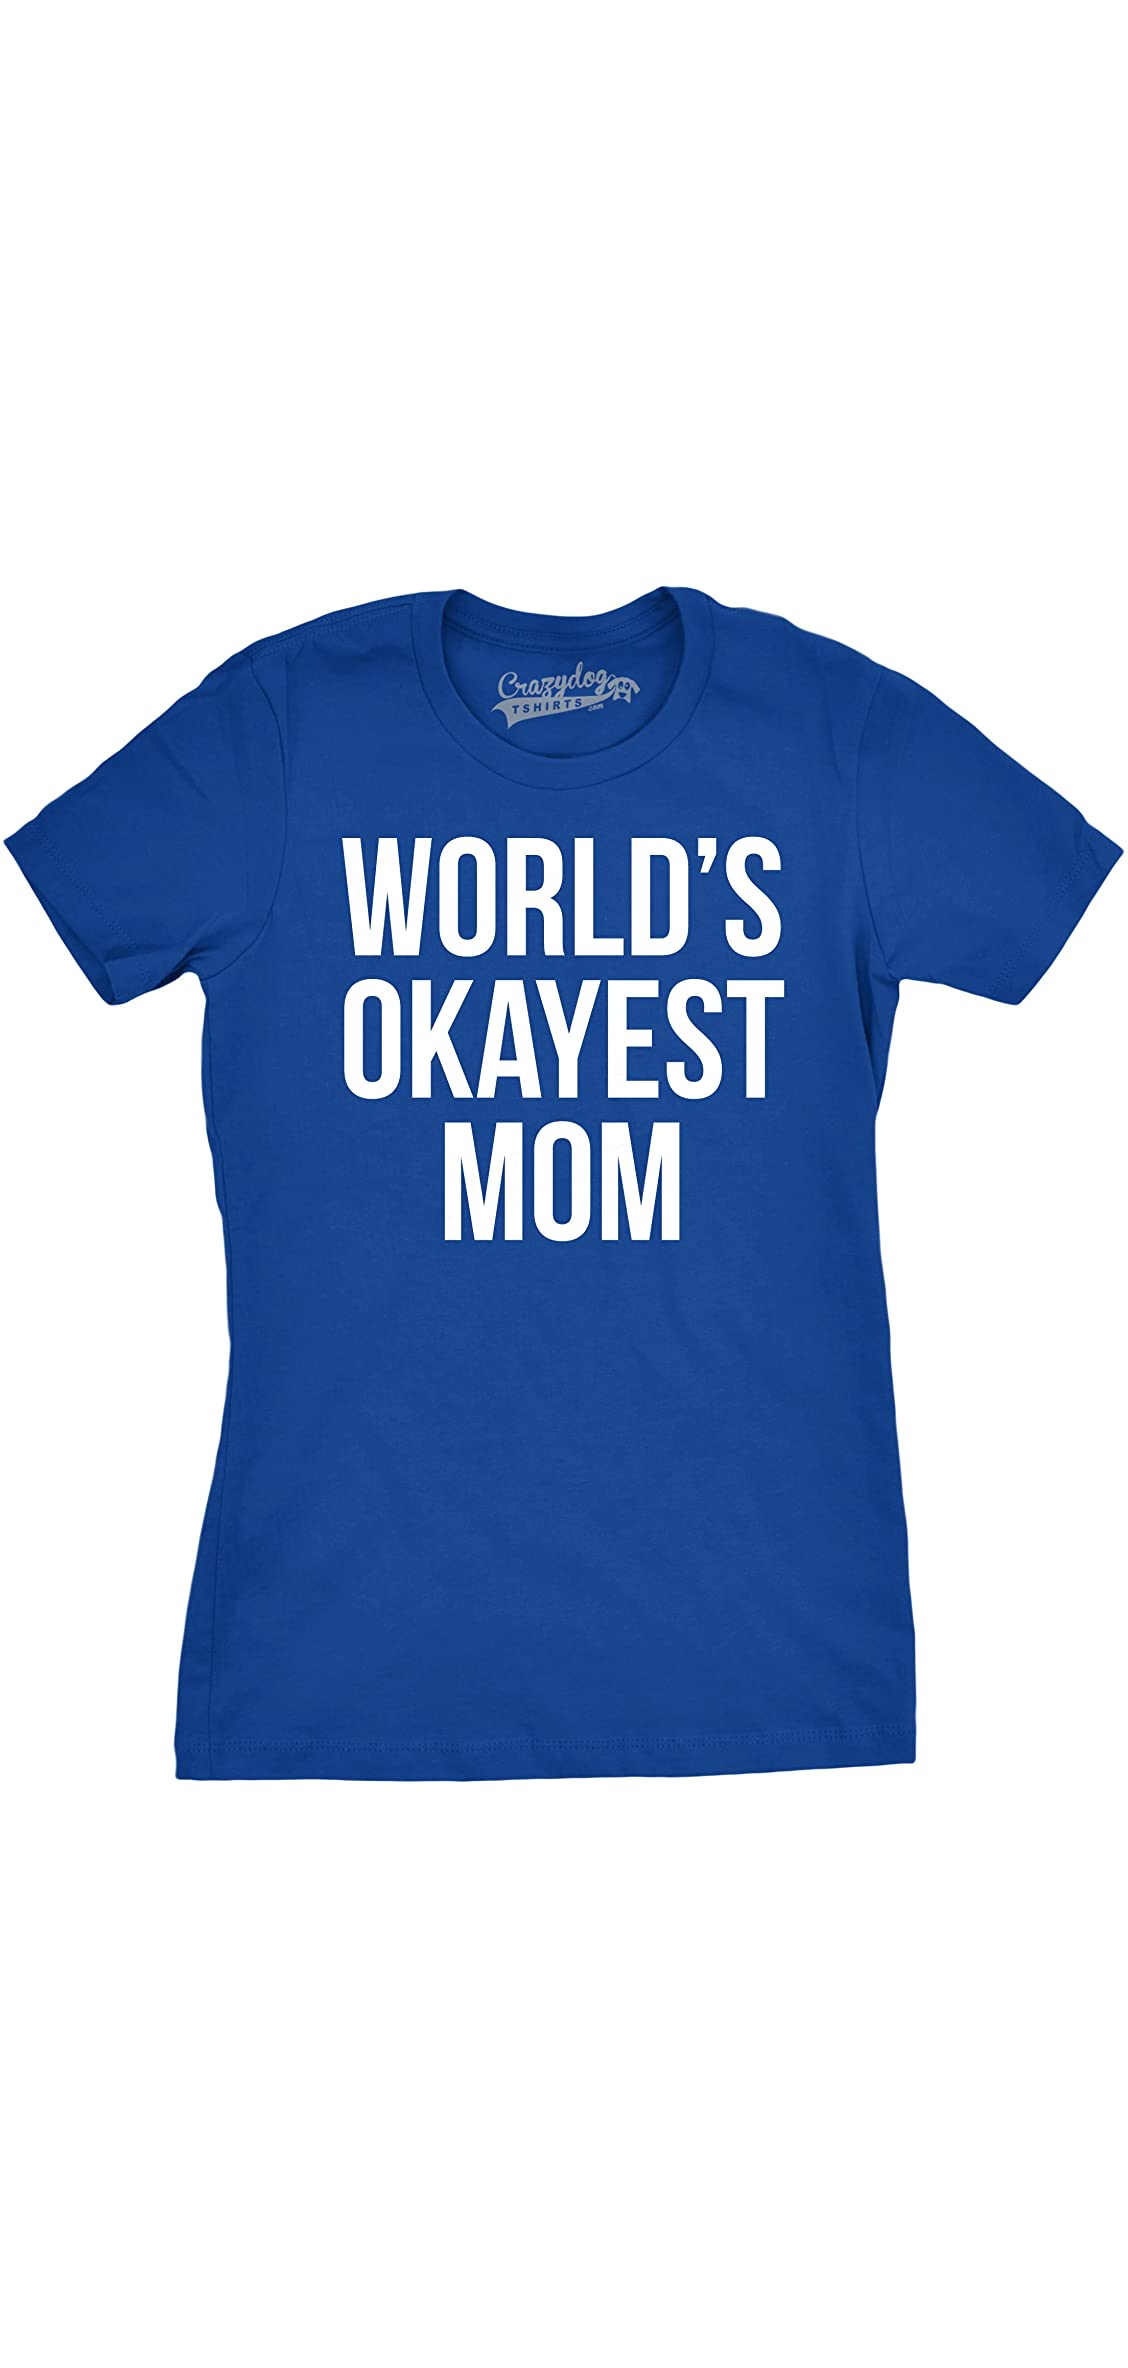 Worlds Okayest Mom T Shirt Funny Mothers Day Tee Gift Sarcastic